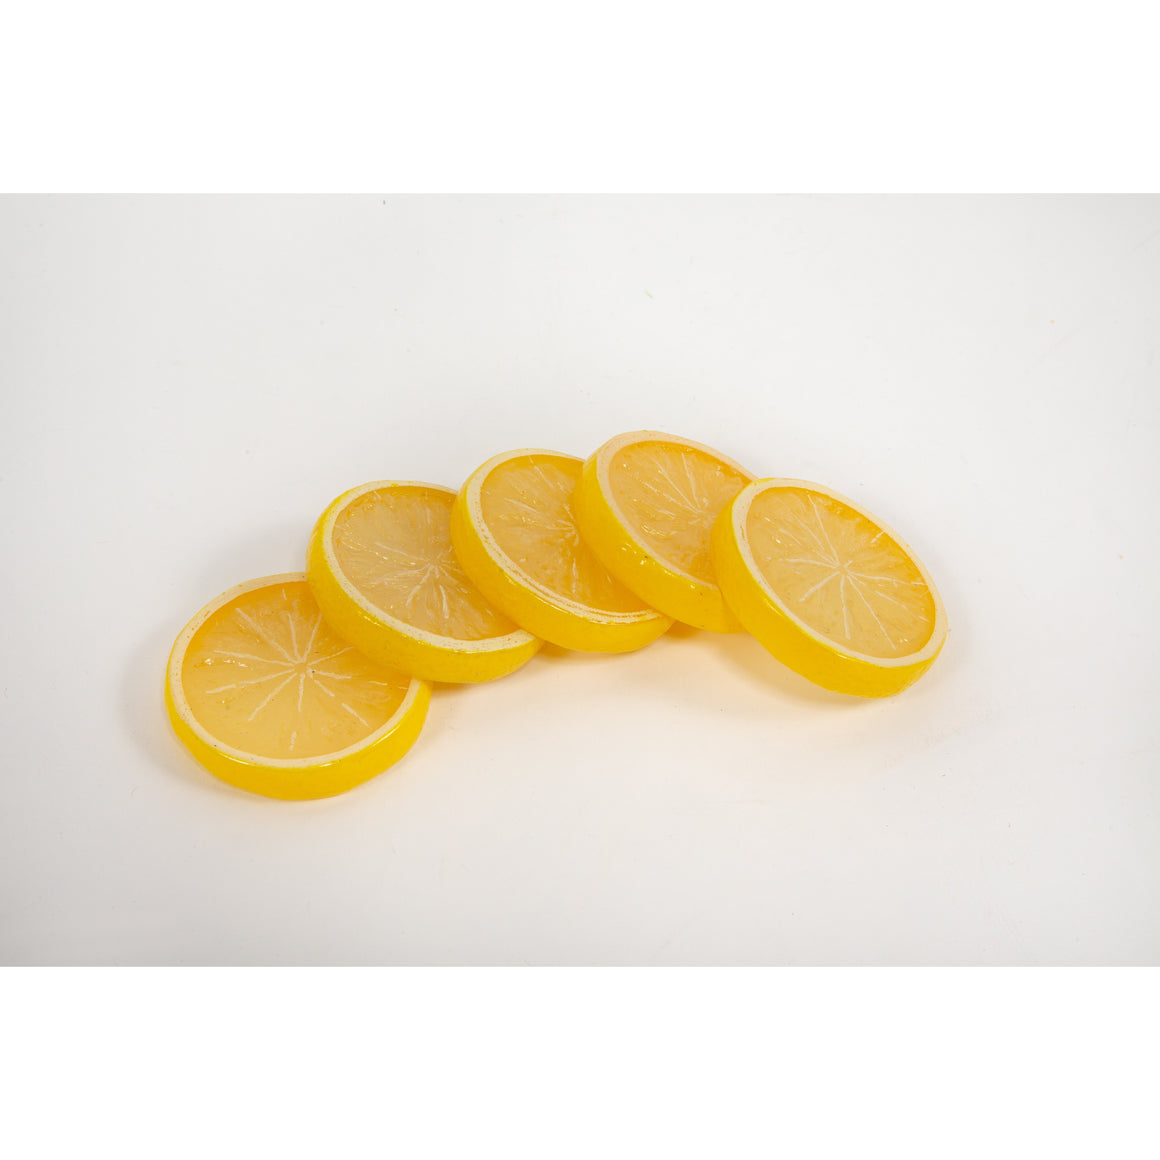 Lemon Slices (Set of 5)